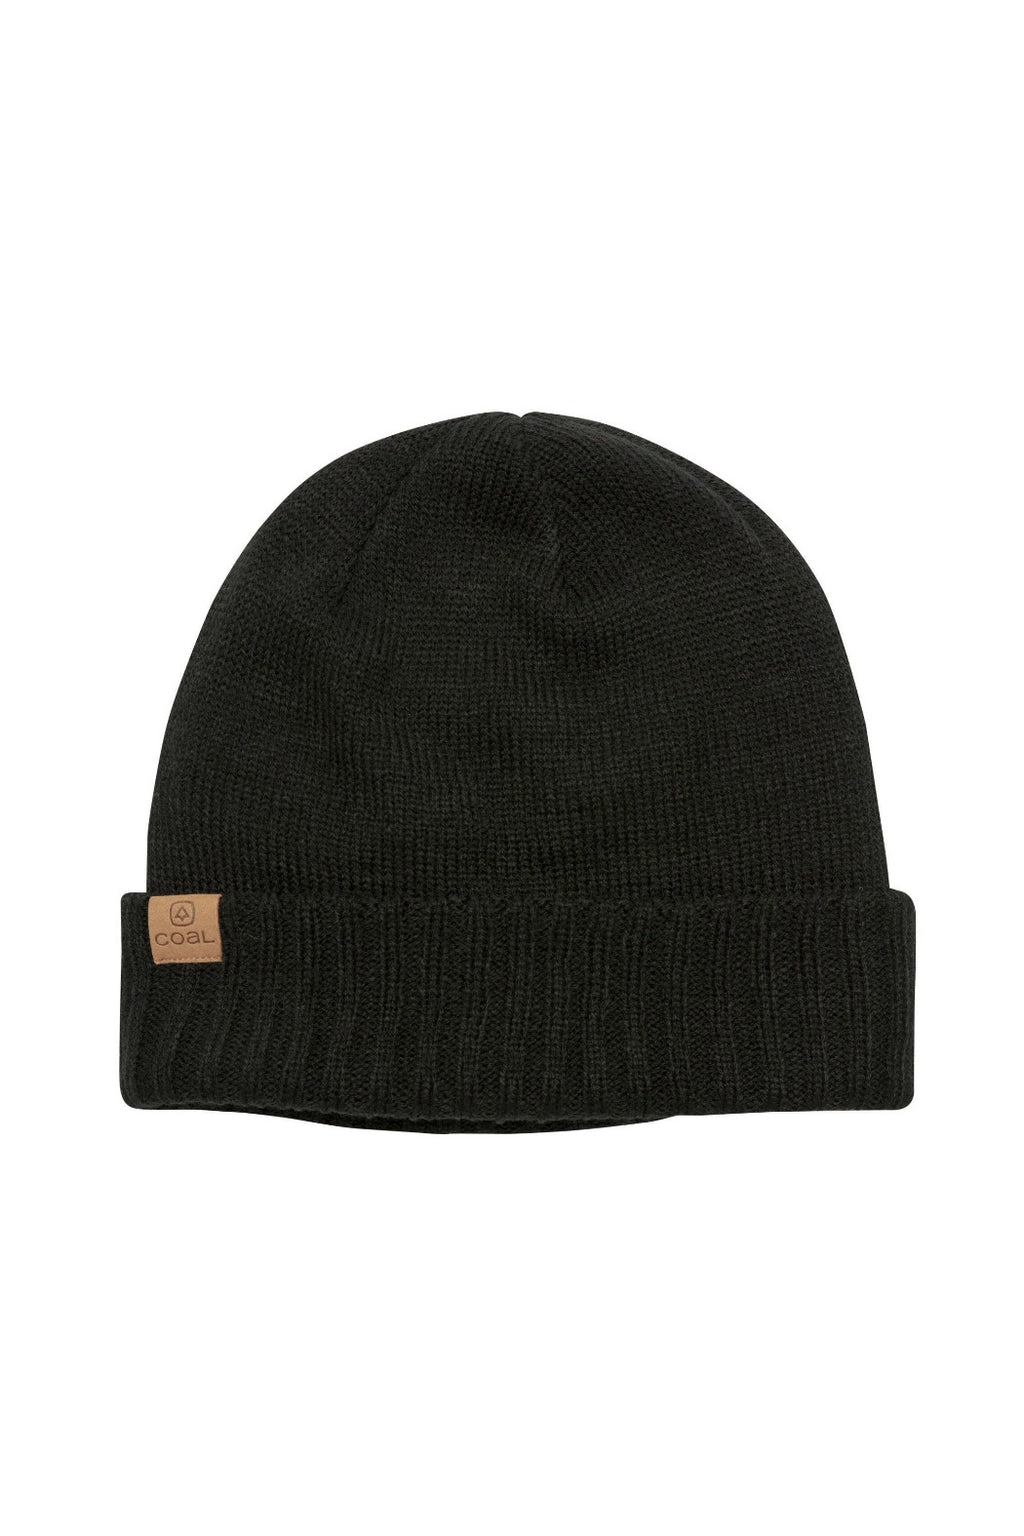 Coal Rogers Fleece Lined Beanie - Black